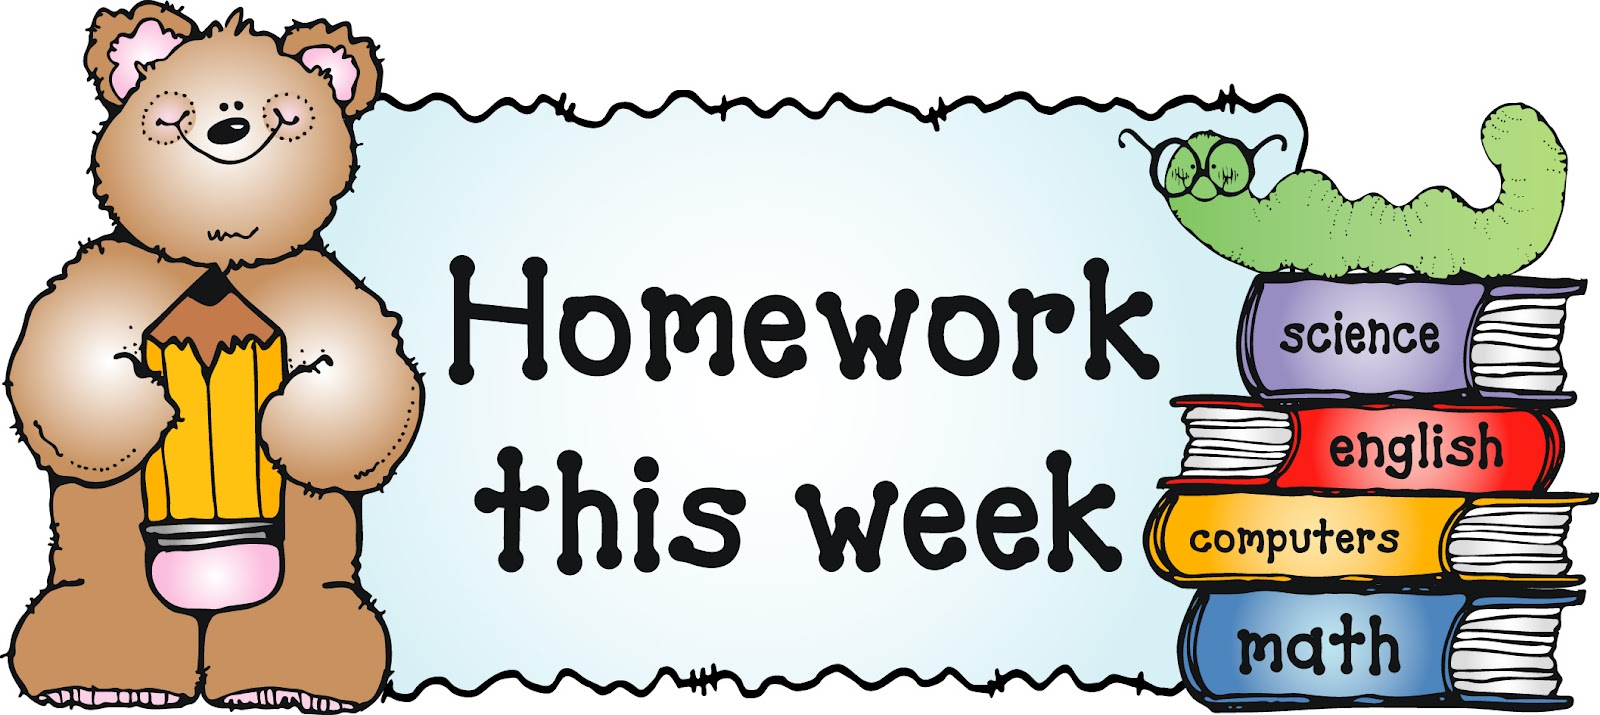 Free images of download. Homework clipart elementary school